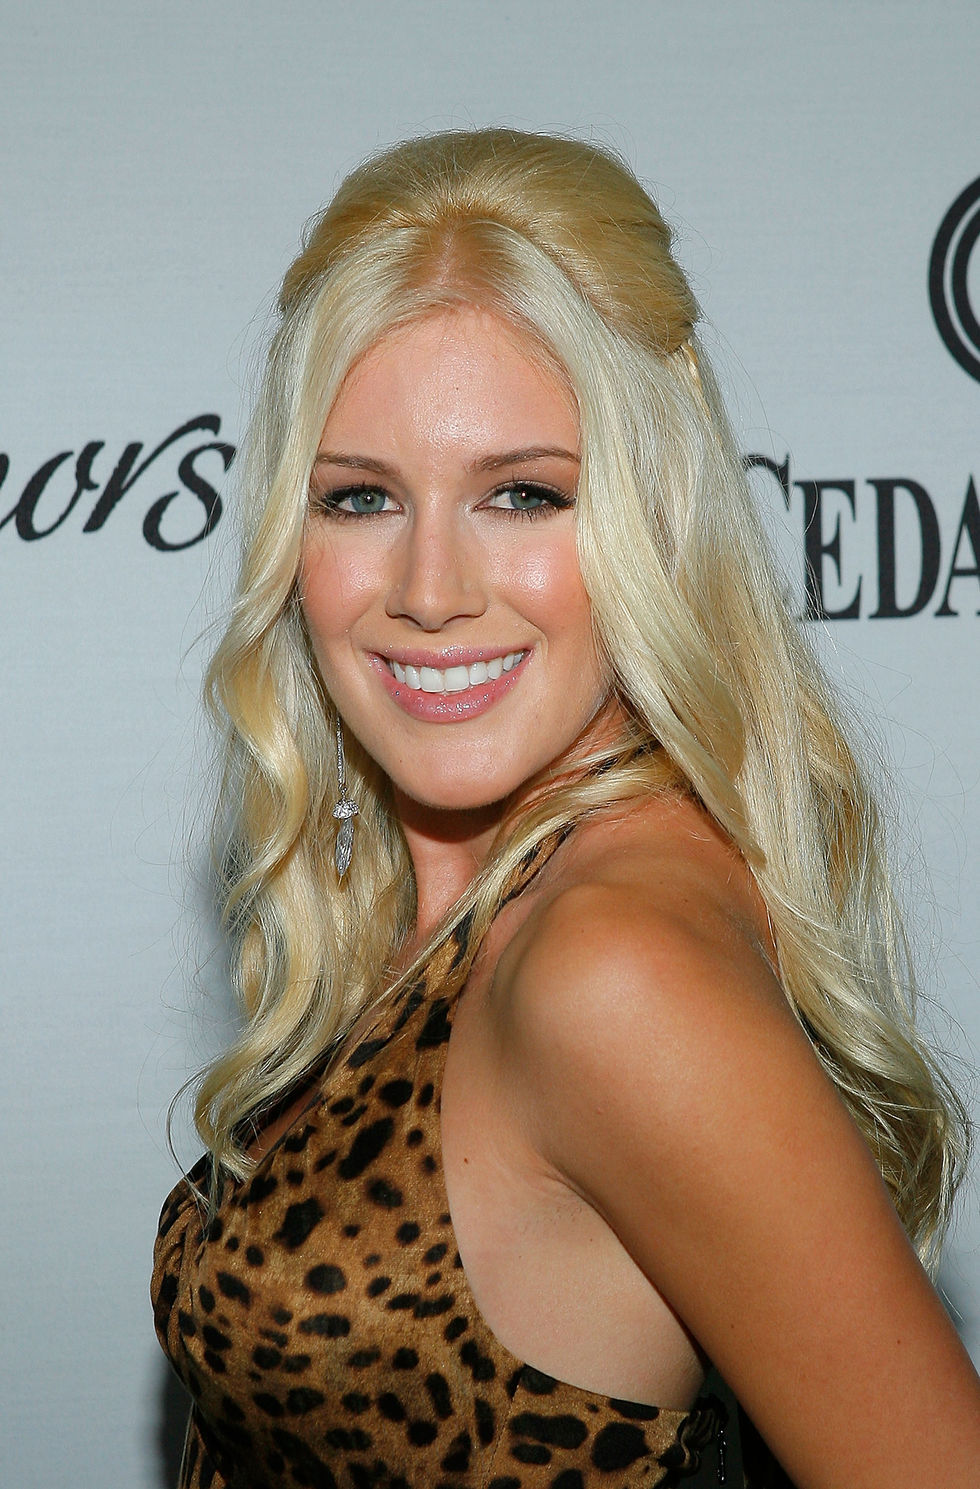 heidi-montag-4th-annual-road-to-a-cure-gala-in-los-angeles-01